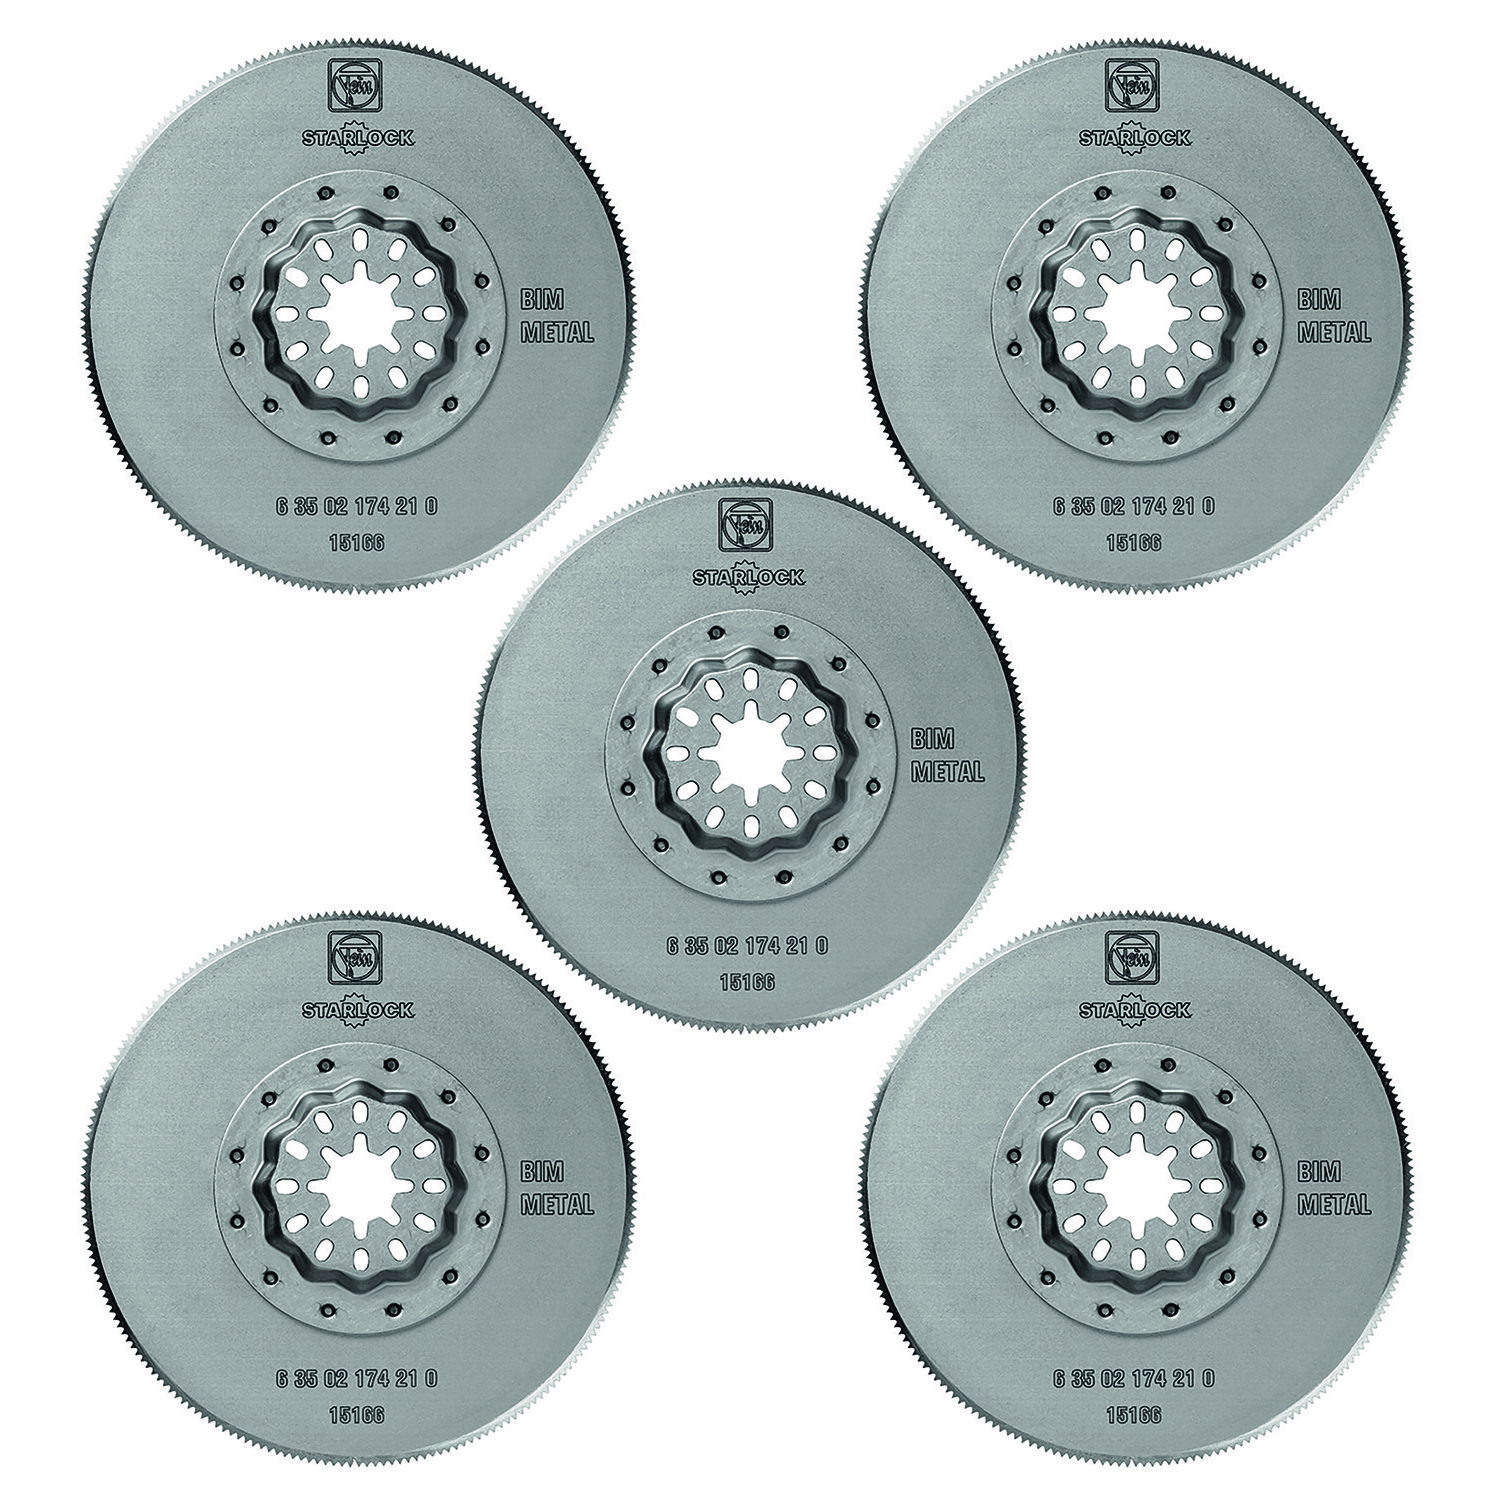 Fein Starlock  Multimaster  3-3/8 in.  x 3-3/8 in. L Saw Blades  Bi-Metal  5 pk